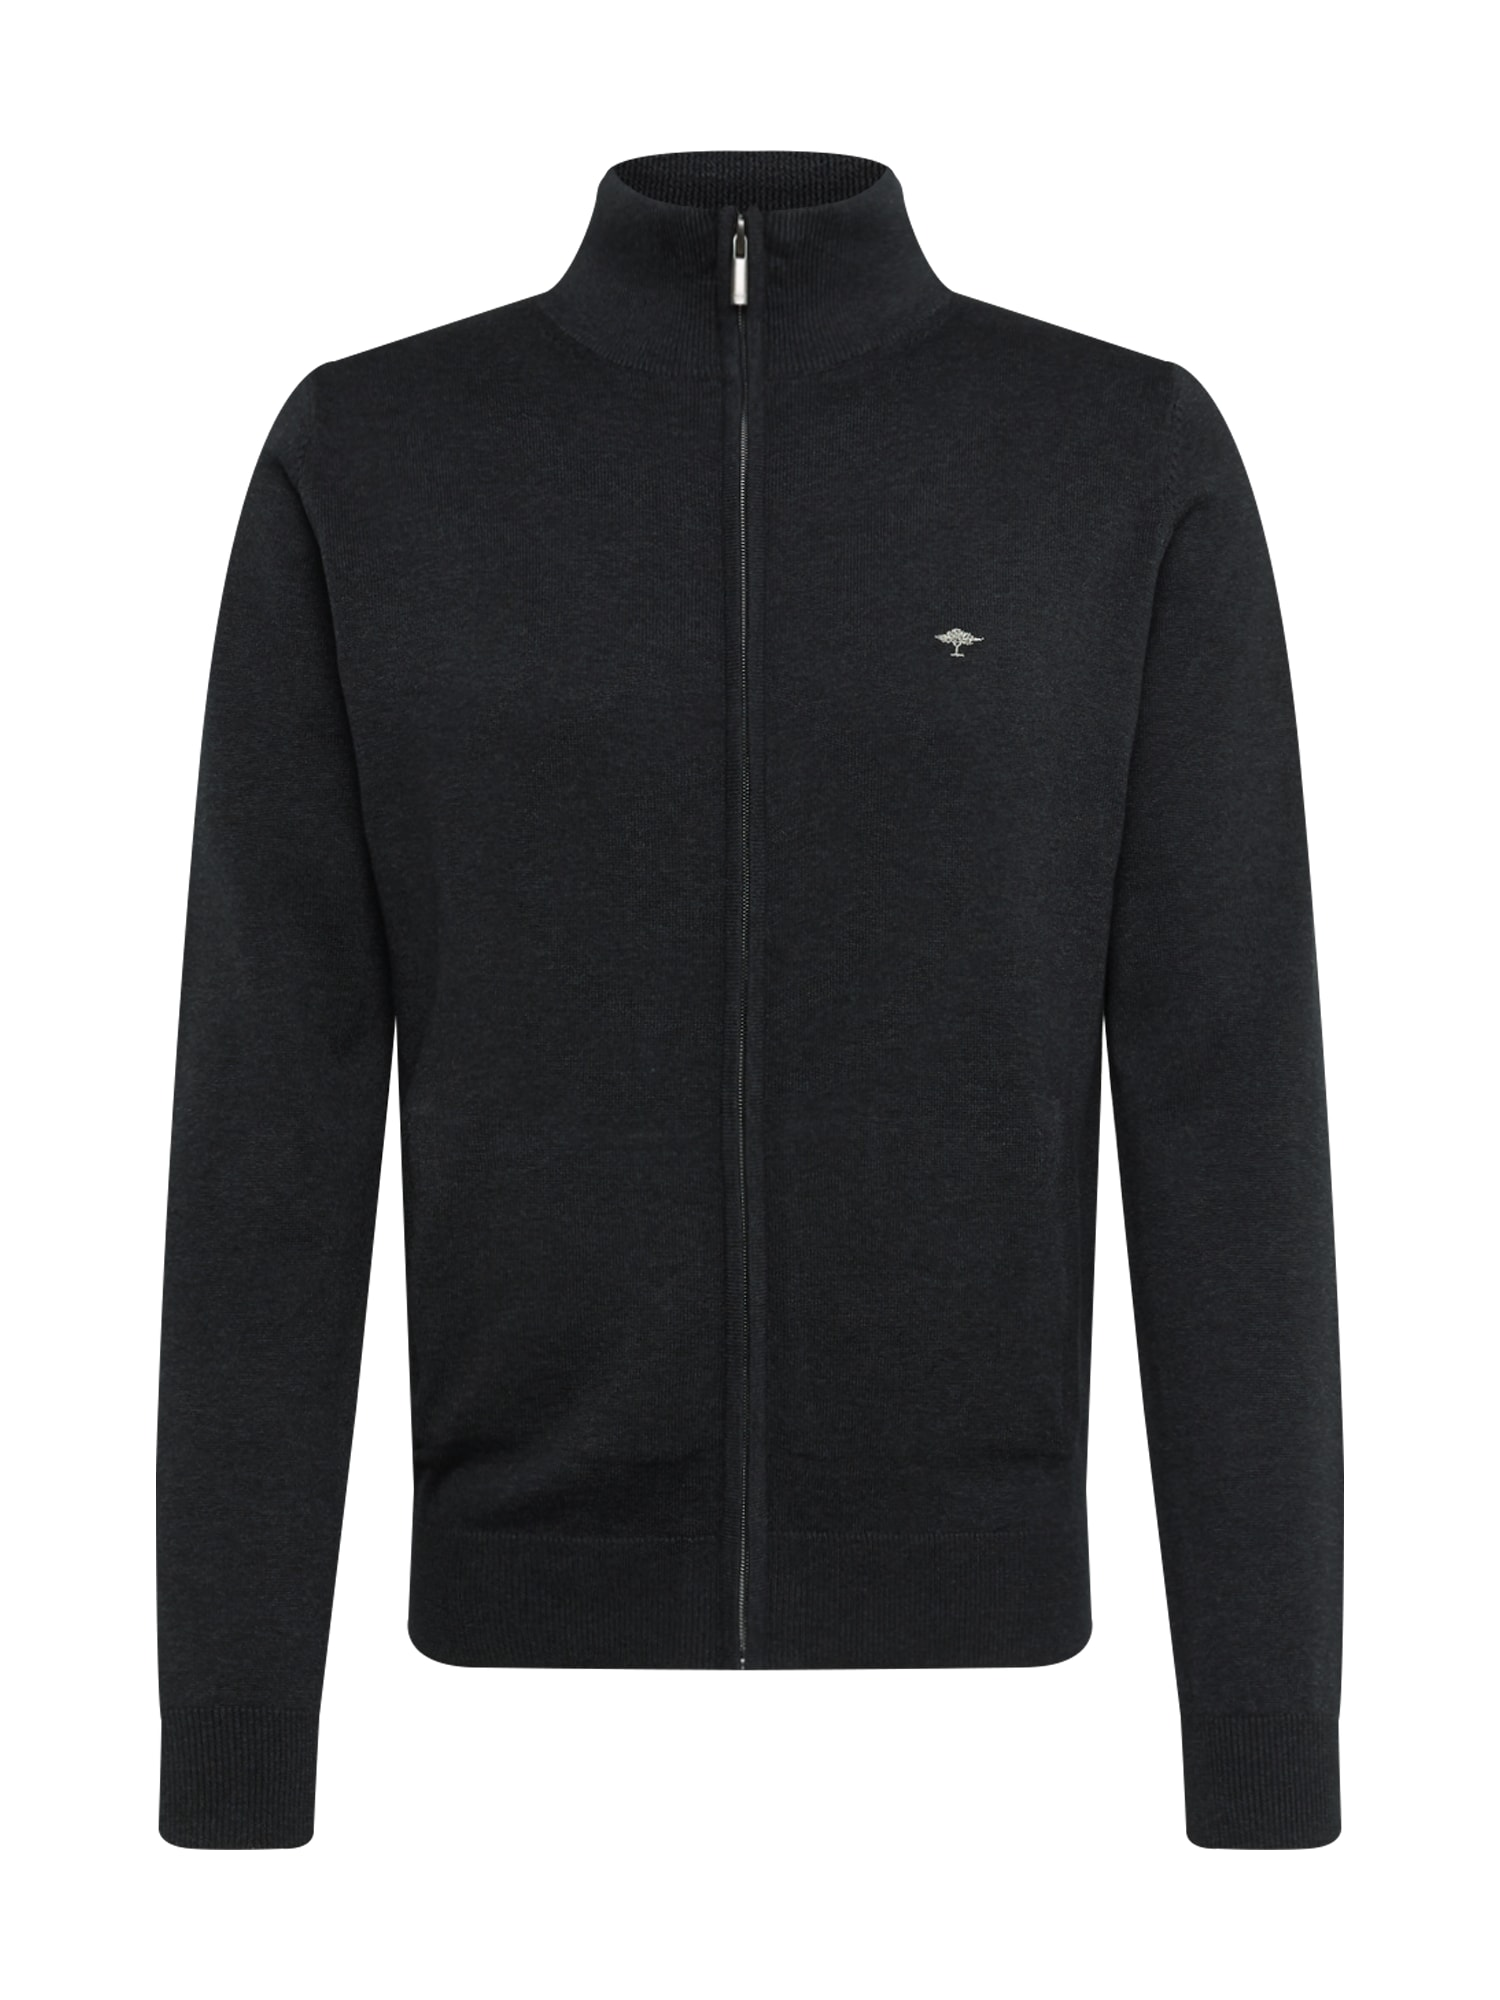 FYNCH-HATTON Kardiganas 'Zip' juoda